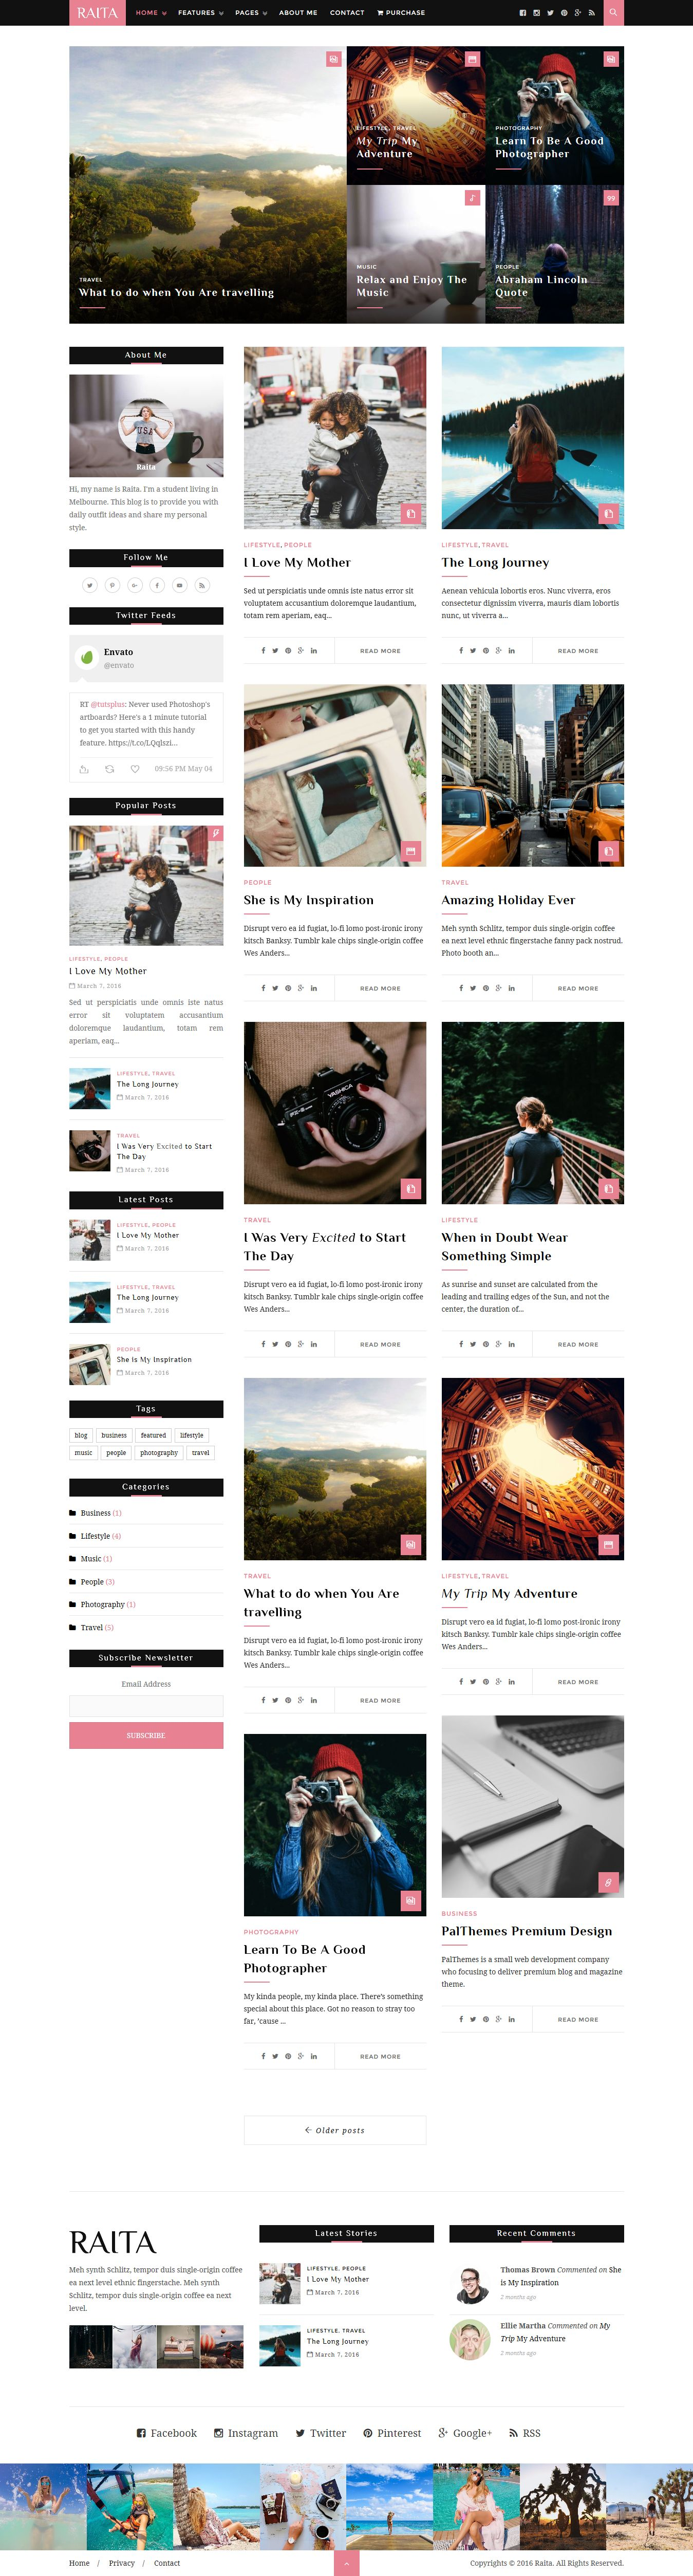 Raita - Minimal WordPress Theme For Writers Screenshot 2